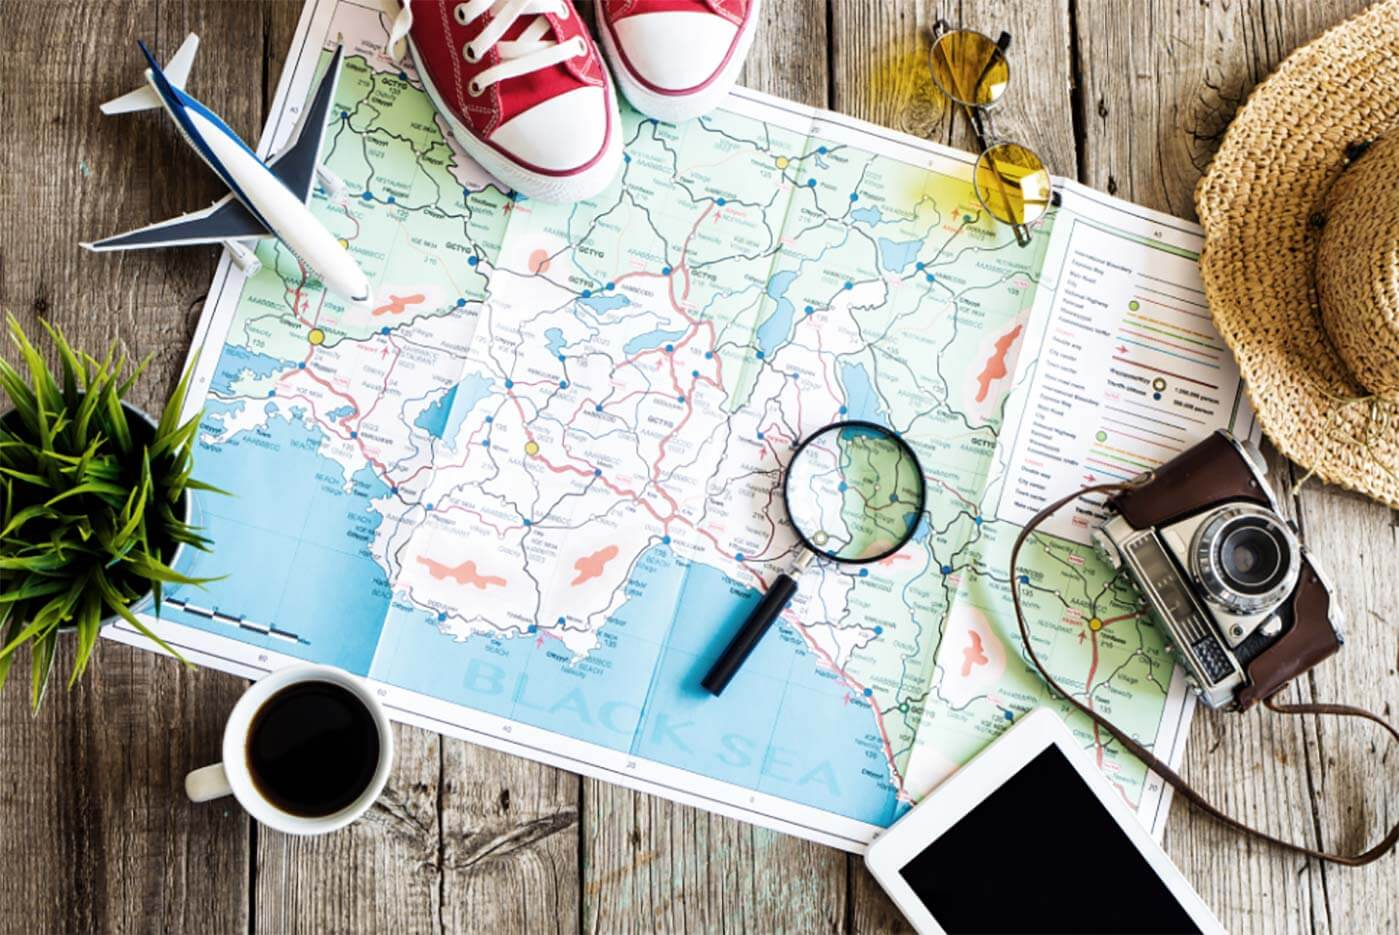 Map, and travel stuff for planning a trip